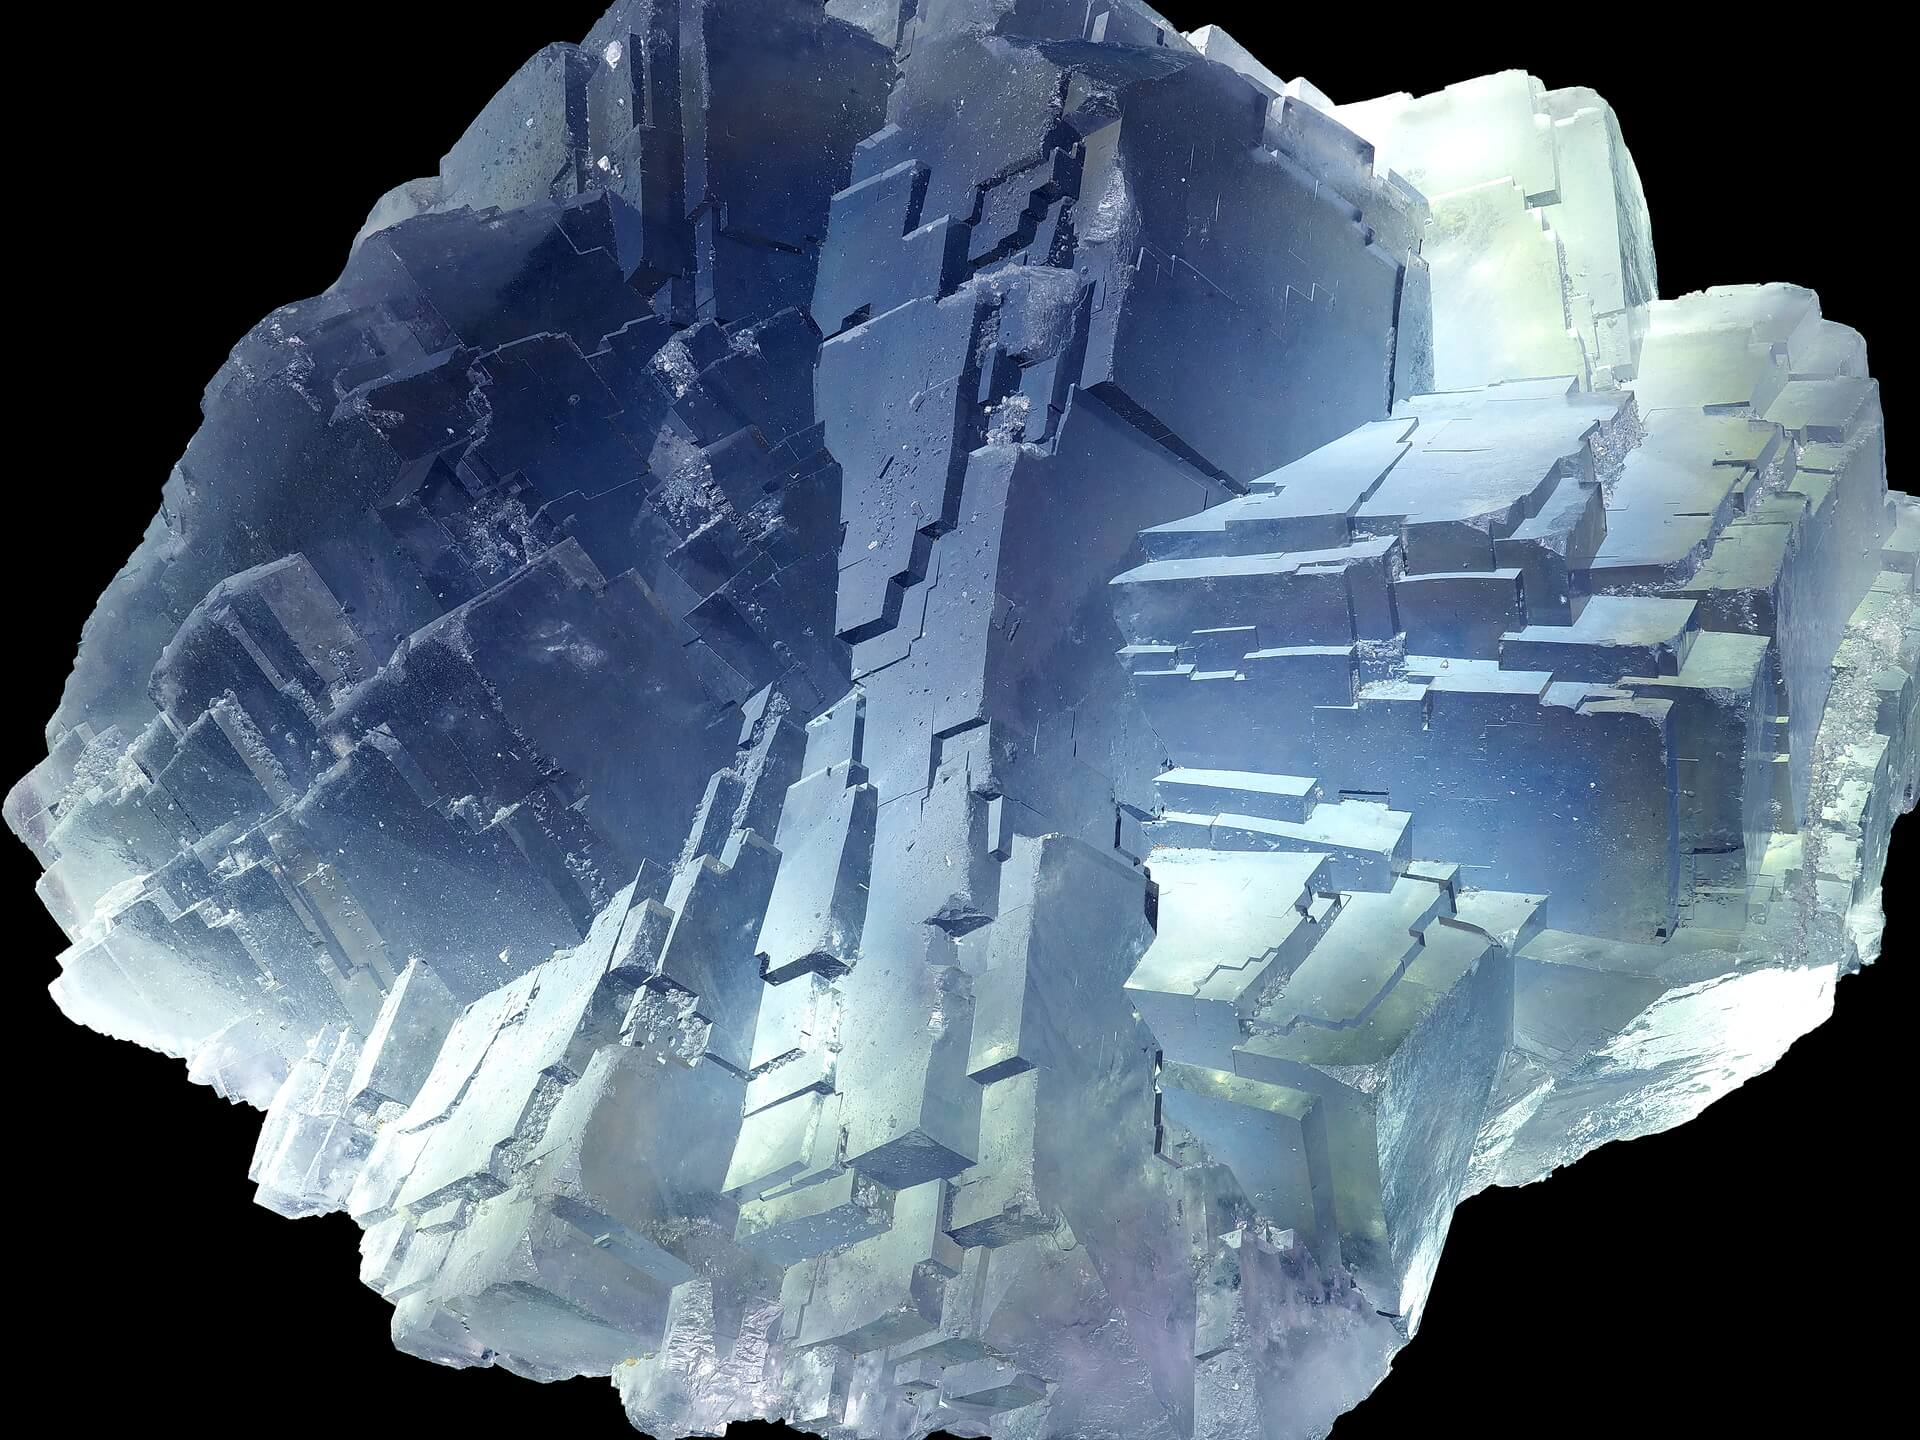 An imposing specimen of blue Fluorite with stepped appearance and striking angles.